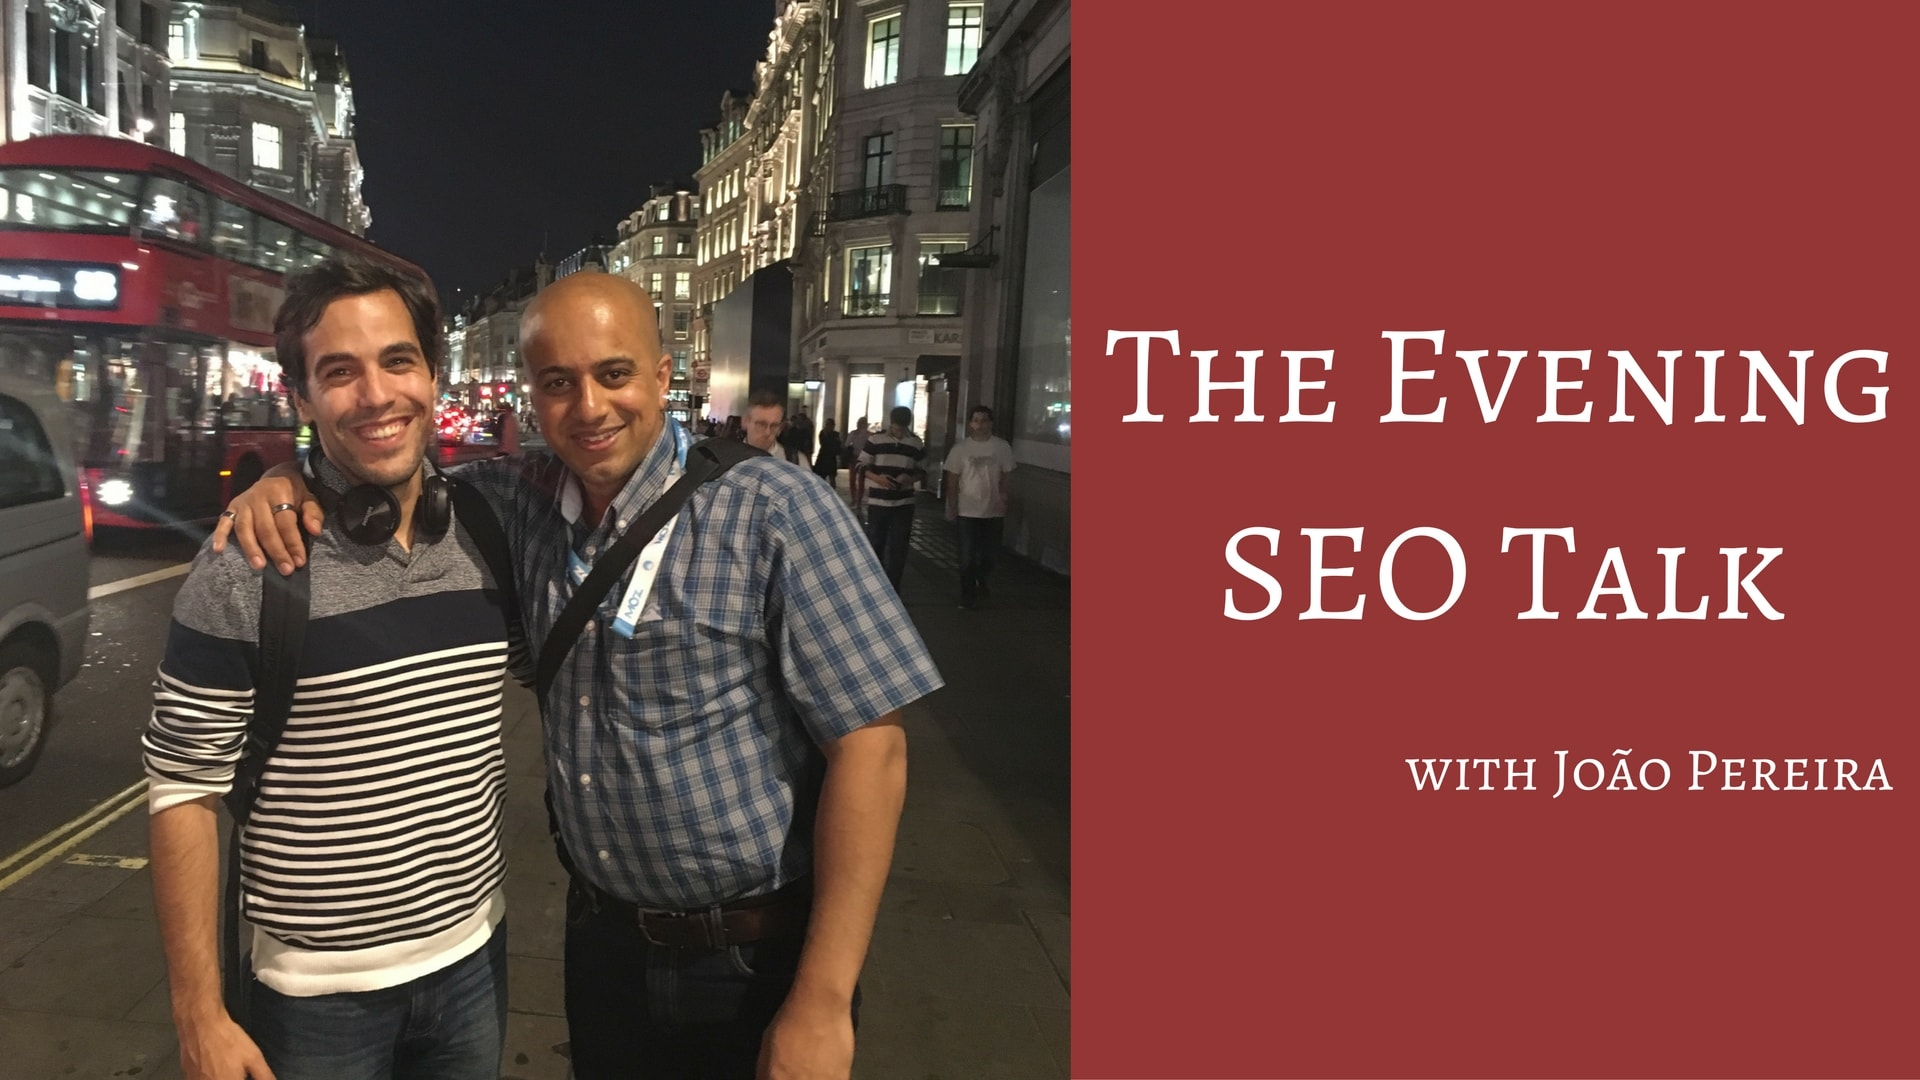 The Evening SEO Talk with with João Pereira